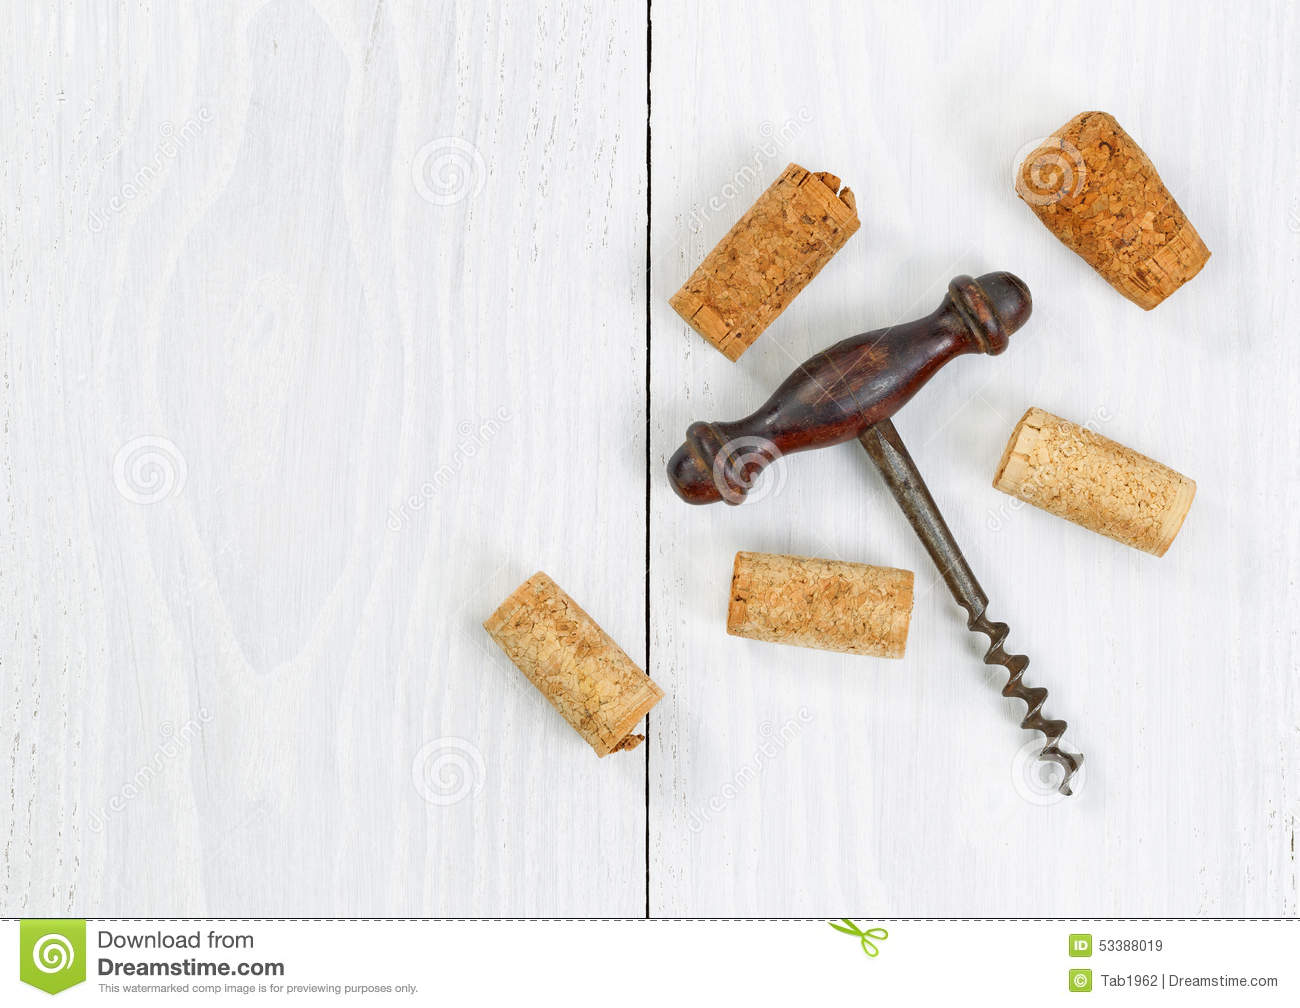 Vintage Corkscrew With Old Corks On White Wooden Boards Stock Photo - Image: 53388019